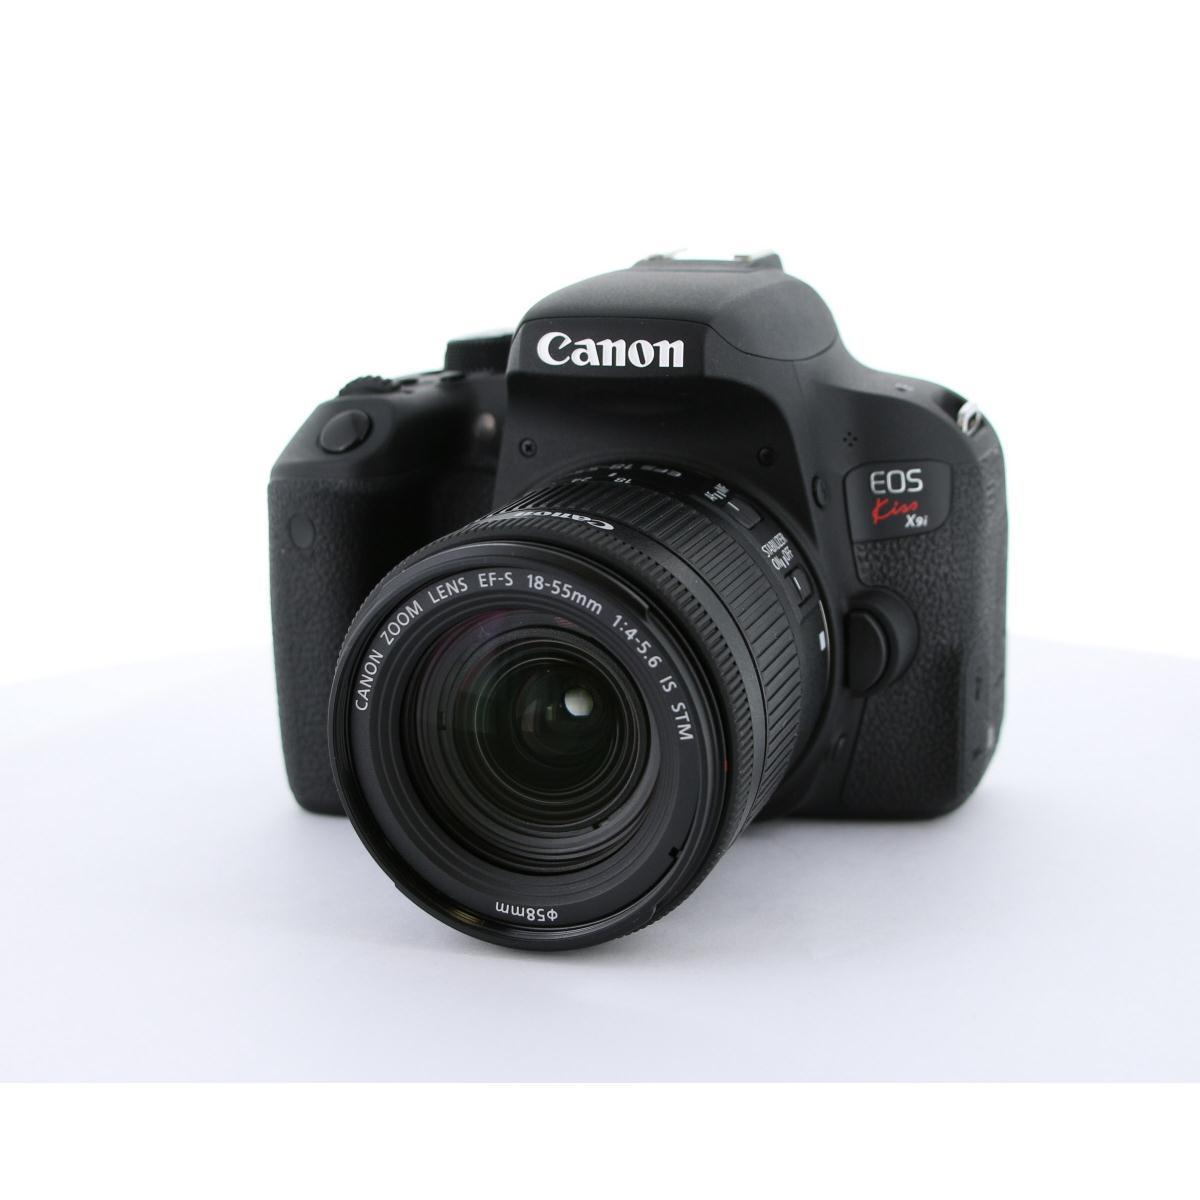 CANON EOS KISS X9I 18-55STM KIT【中古】